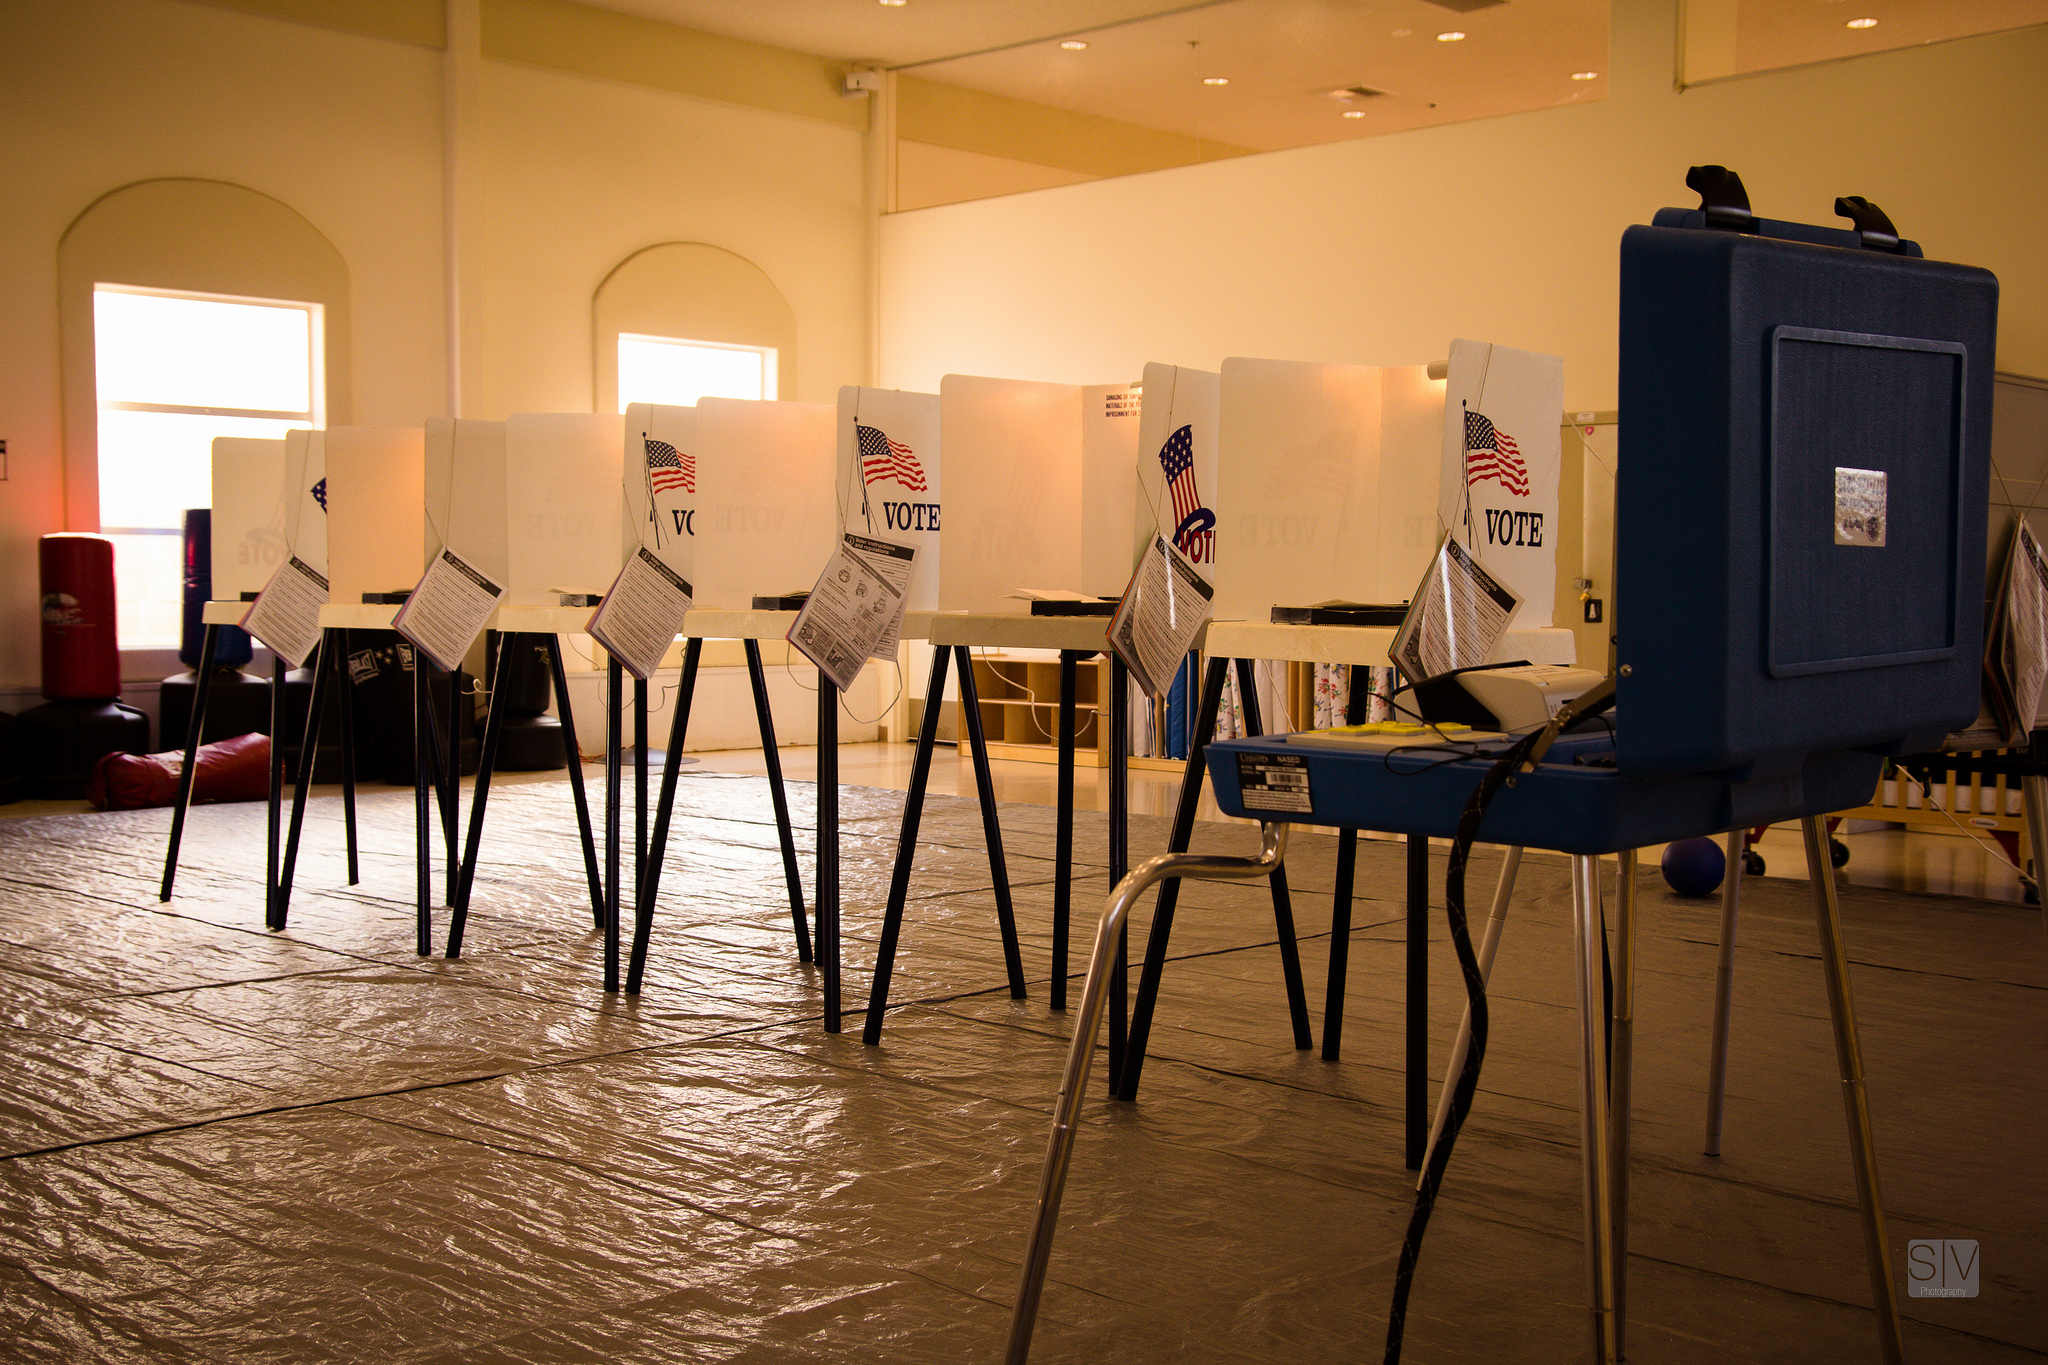 The Father Abstaining from Voting